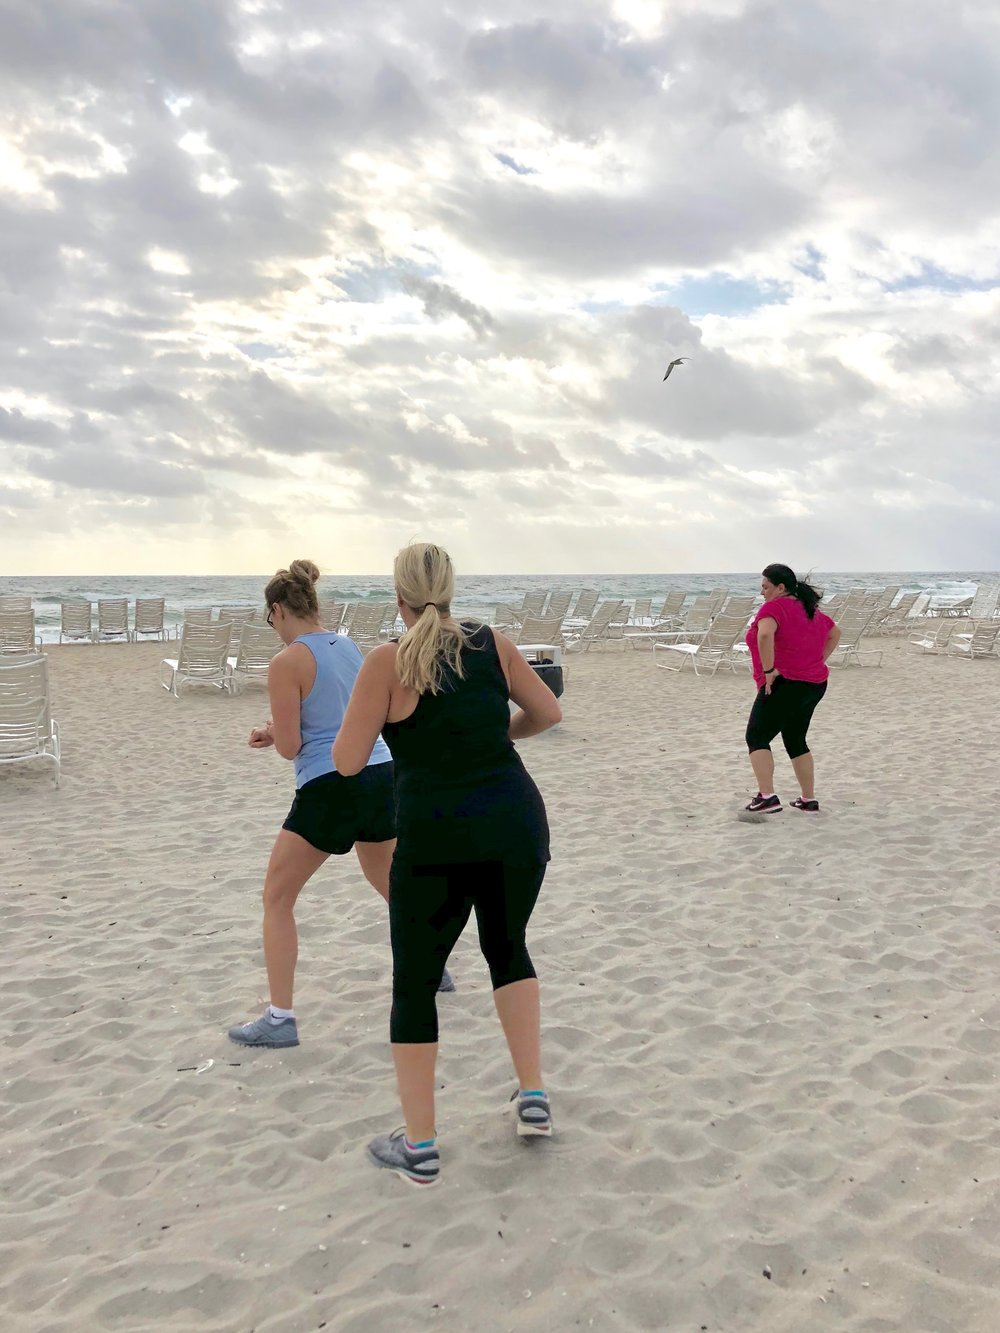 Guests enjoy another workout on the beach.